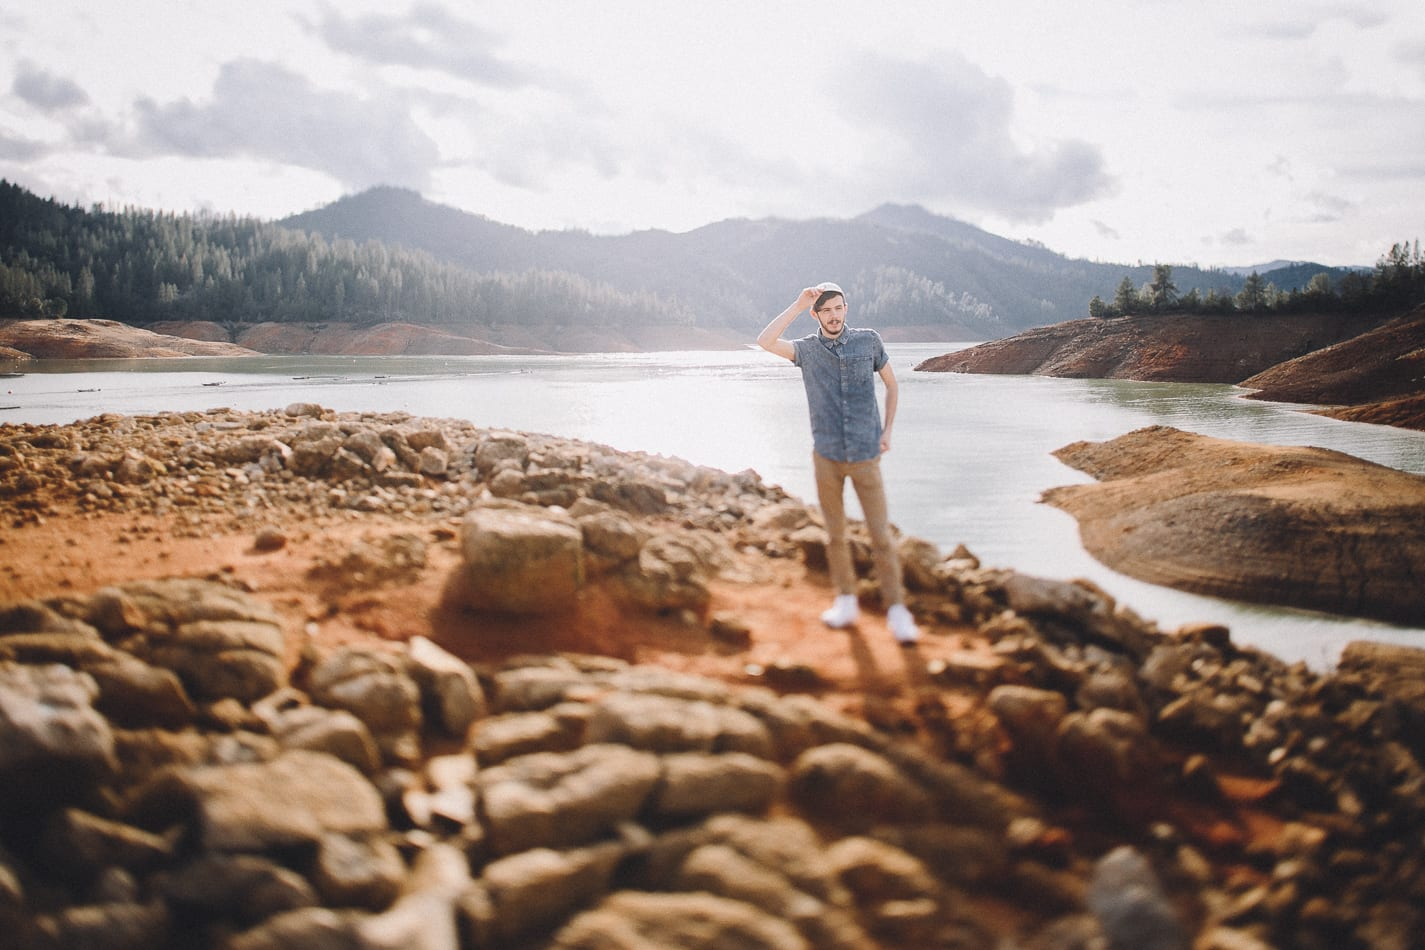 shasta-lake-portrait-lifestyle-photo-9